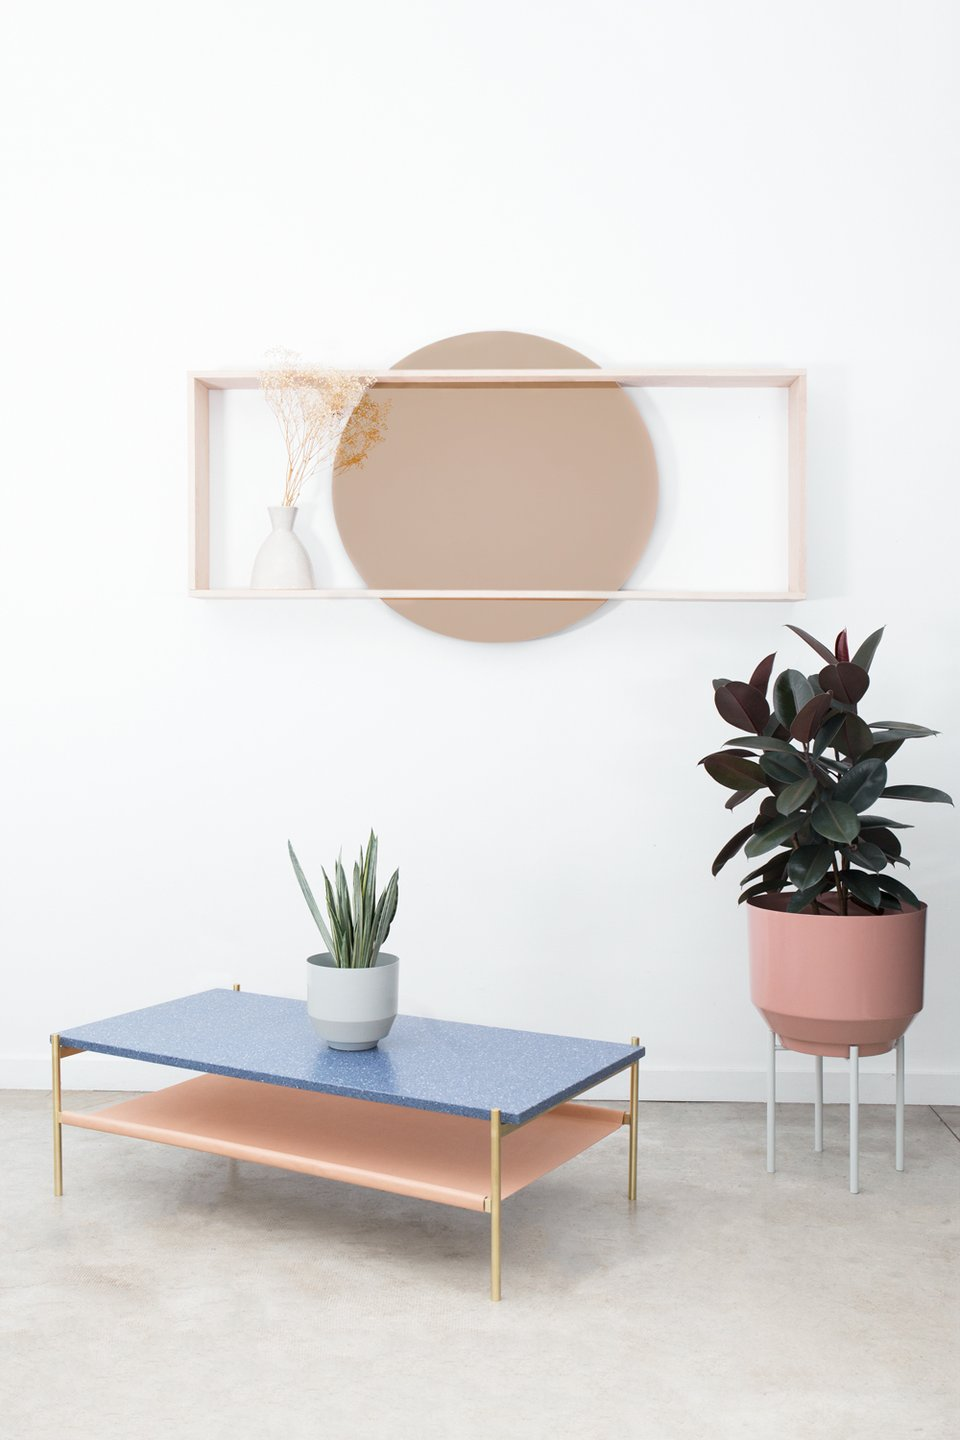 DAY MIRROR Yield Design